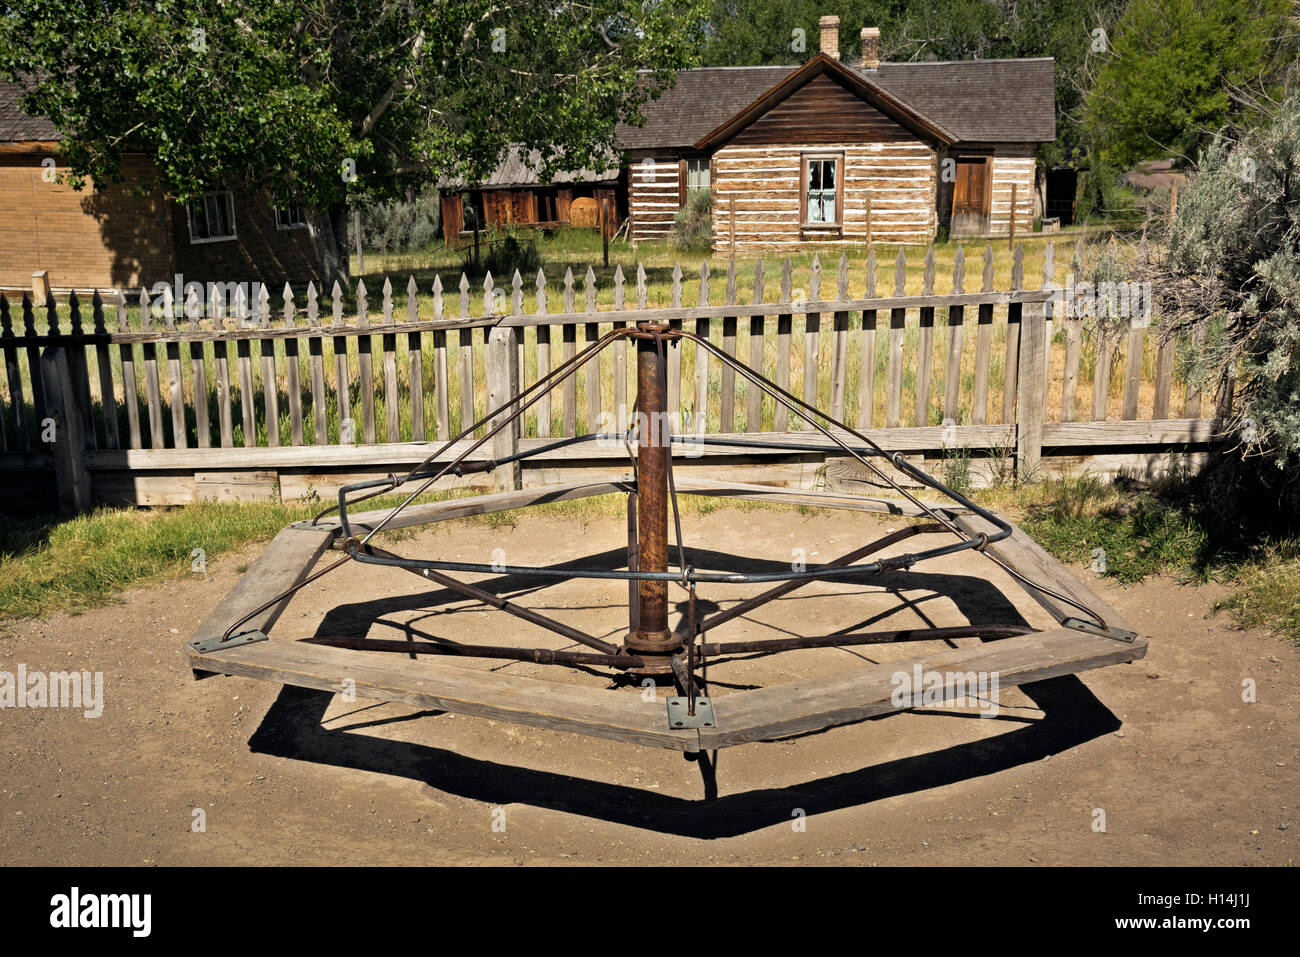 MT00047-00...MONTANA - School yard playground at ghost town of Bannack in Bannack State Park. - Stock Image